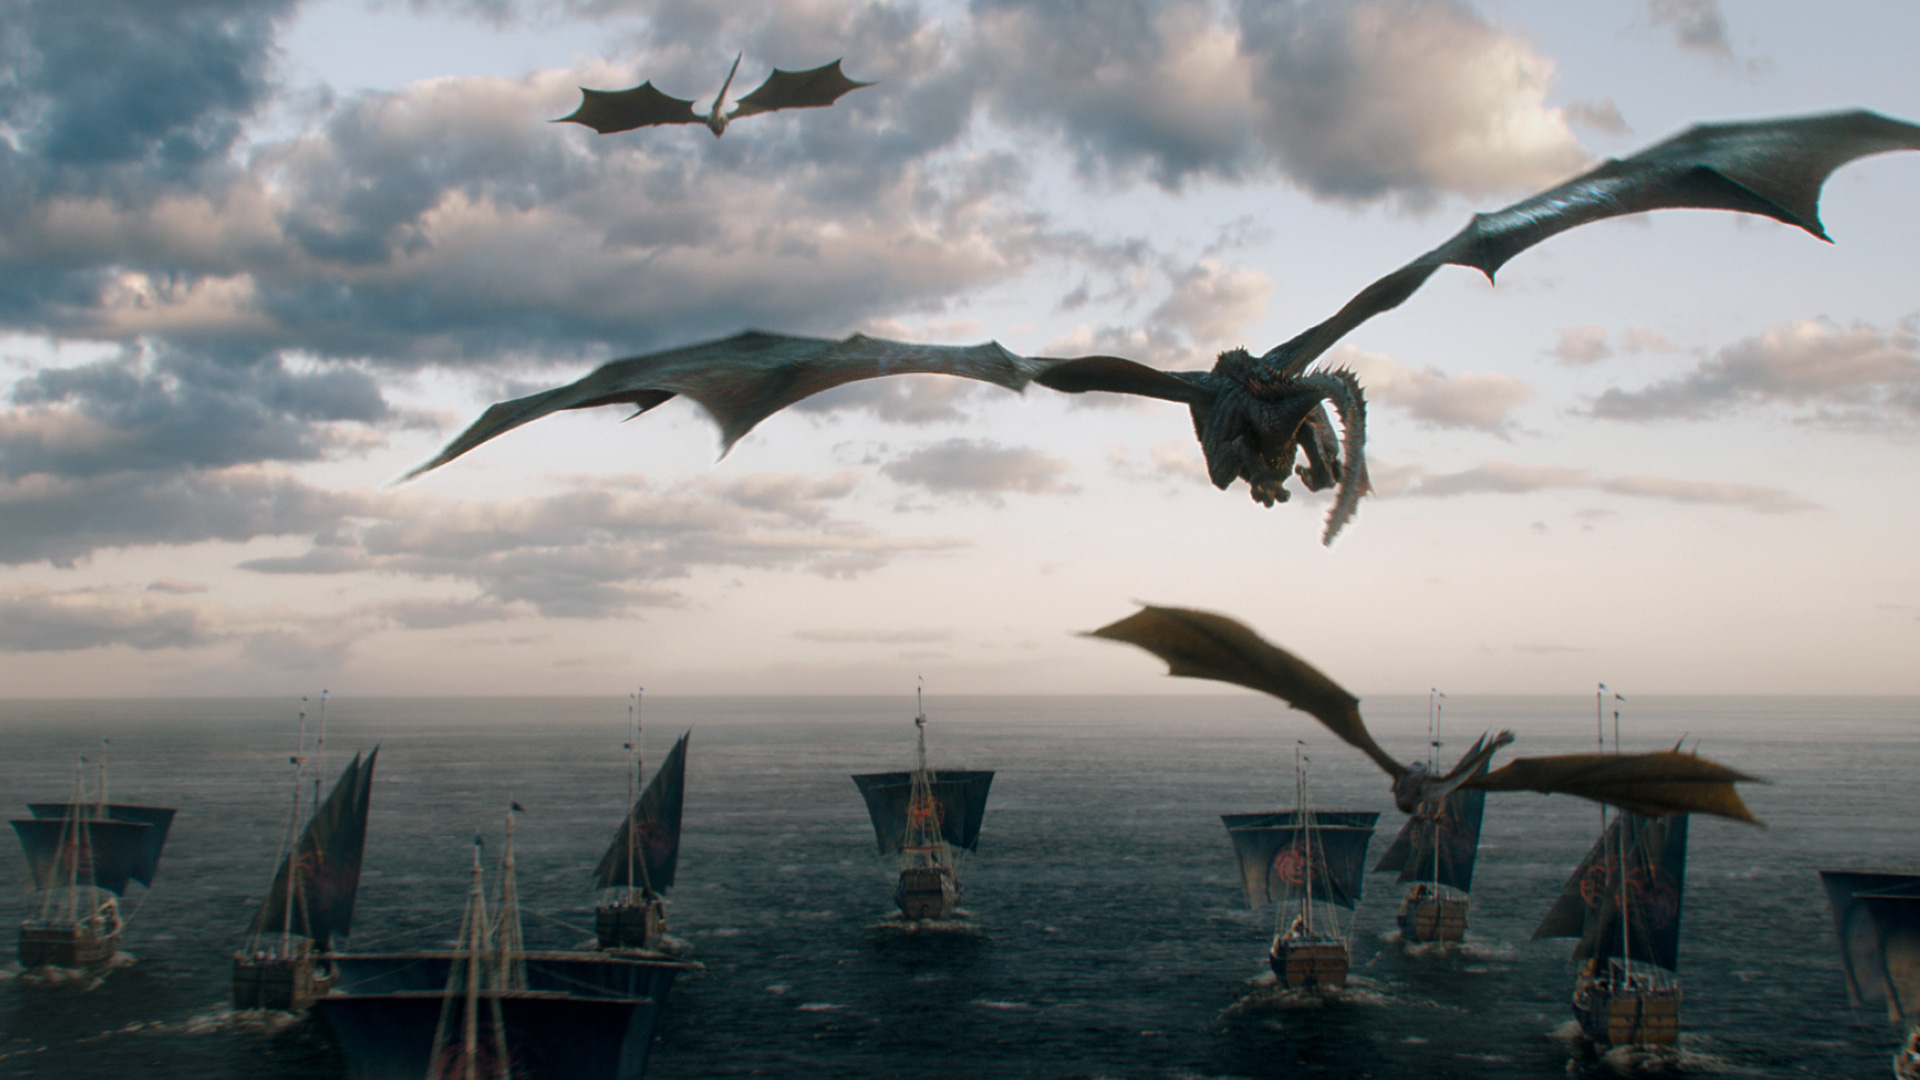 Pictures Of The New Game Of Thrones Season 8 Trailer Has Landed 1 1